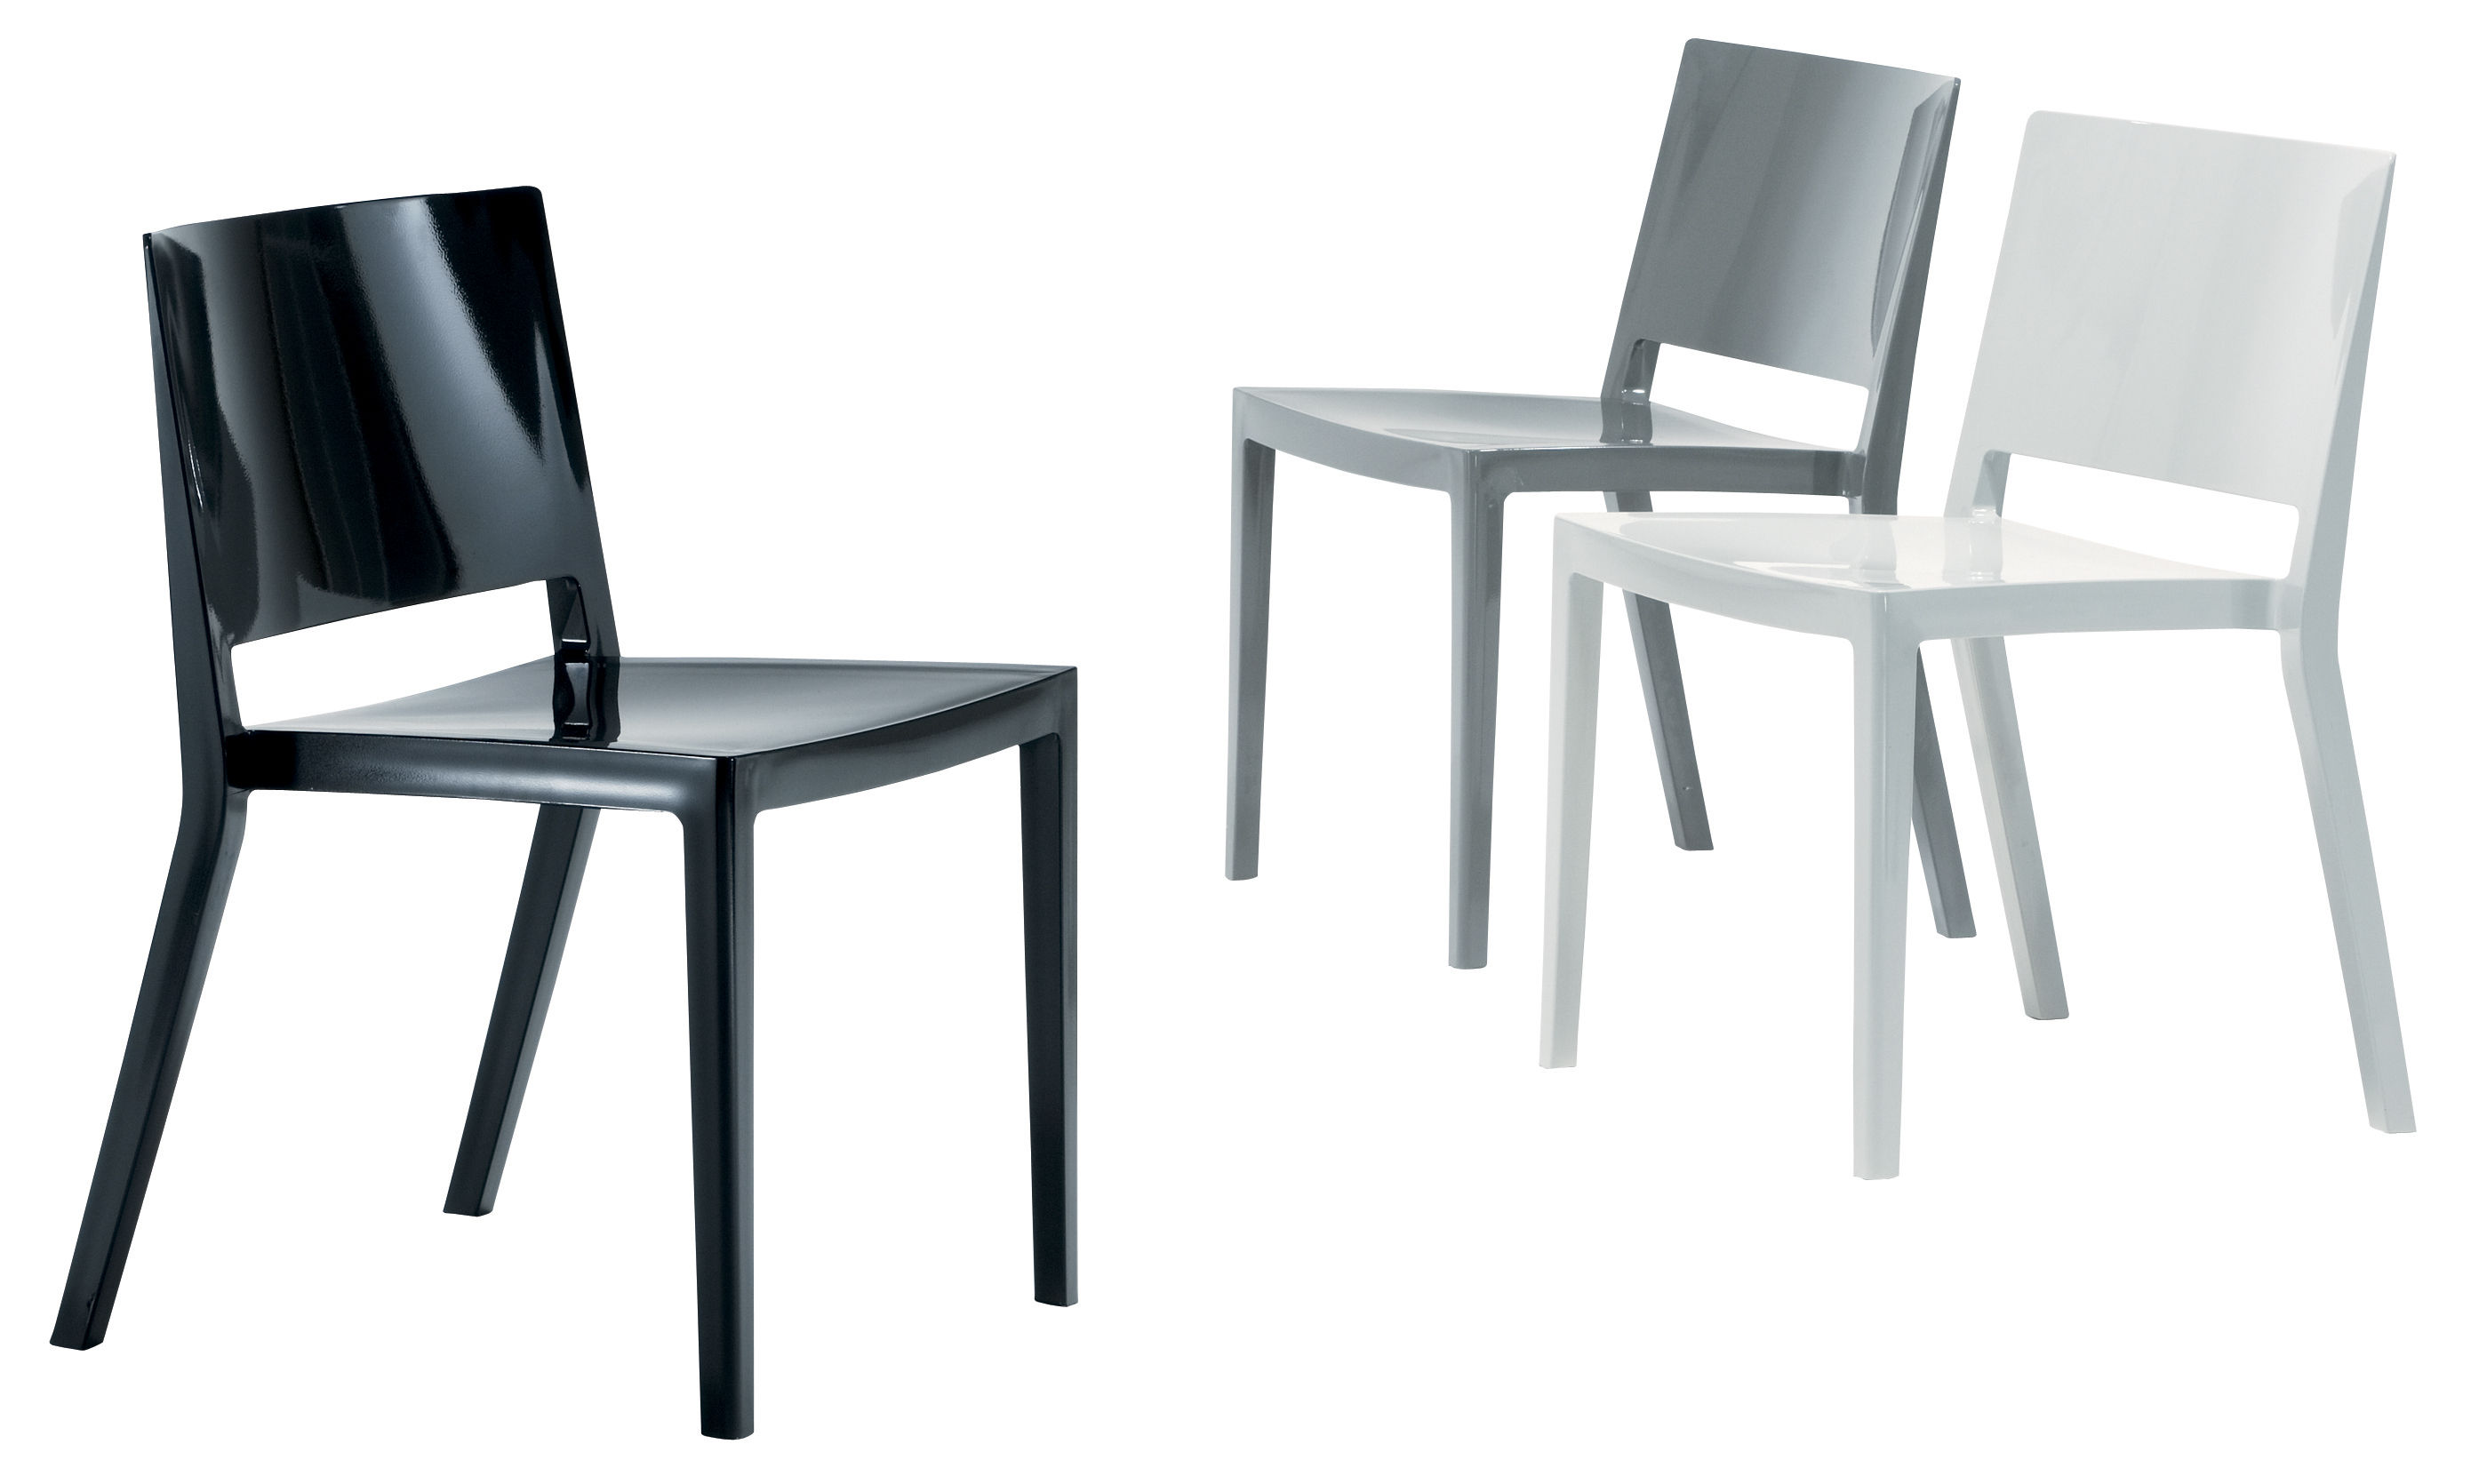 design chair kartell pb anywhere lizz stacking glossy version black by